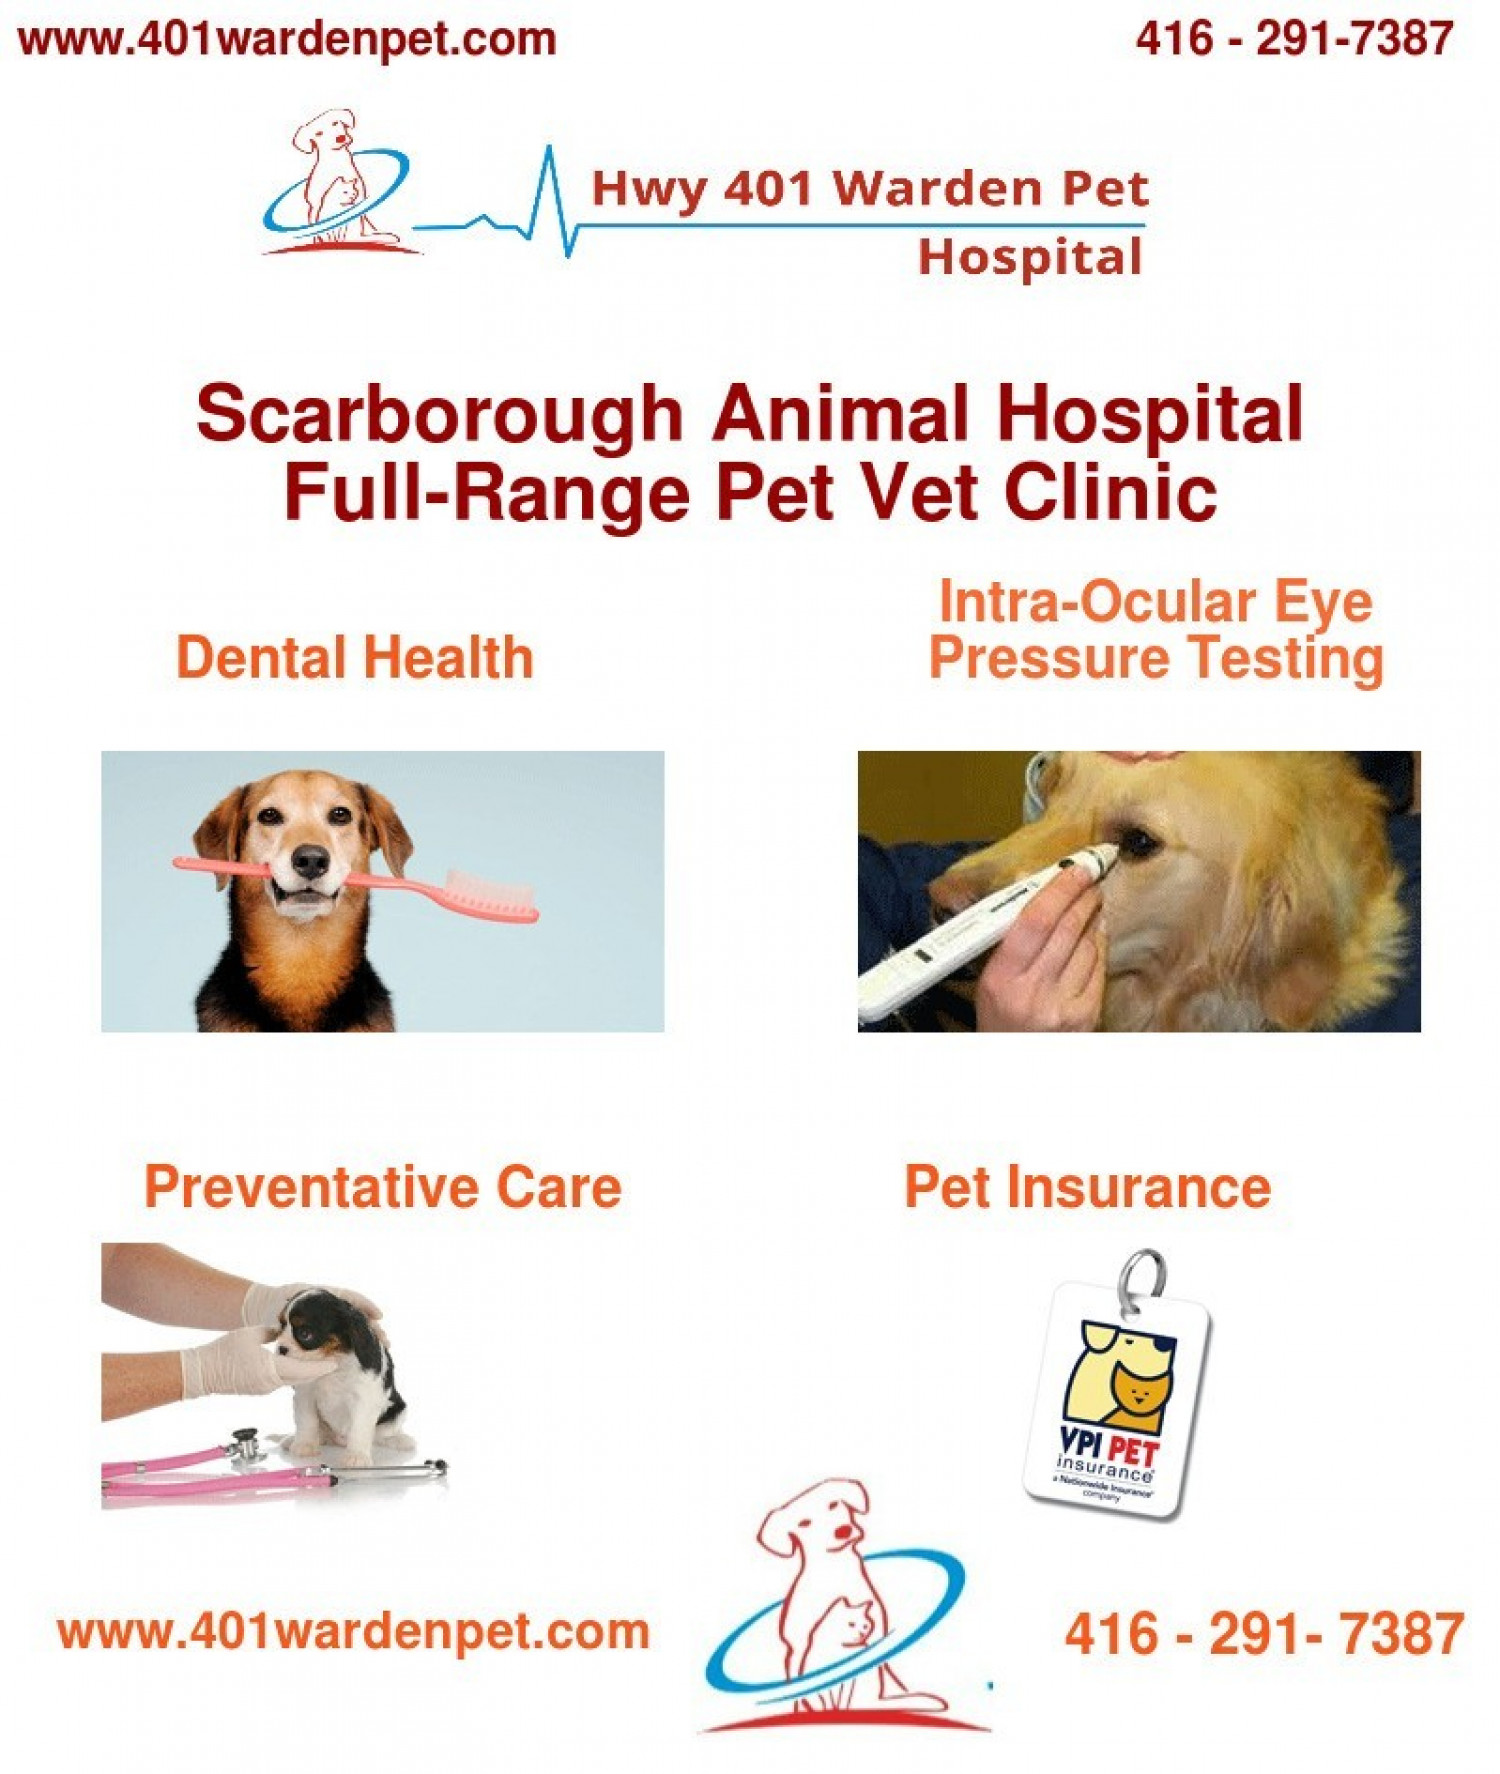 Scarborough Veterinary Hospital | Hwy 401 Warden Pet Infographic